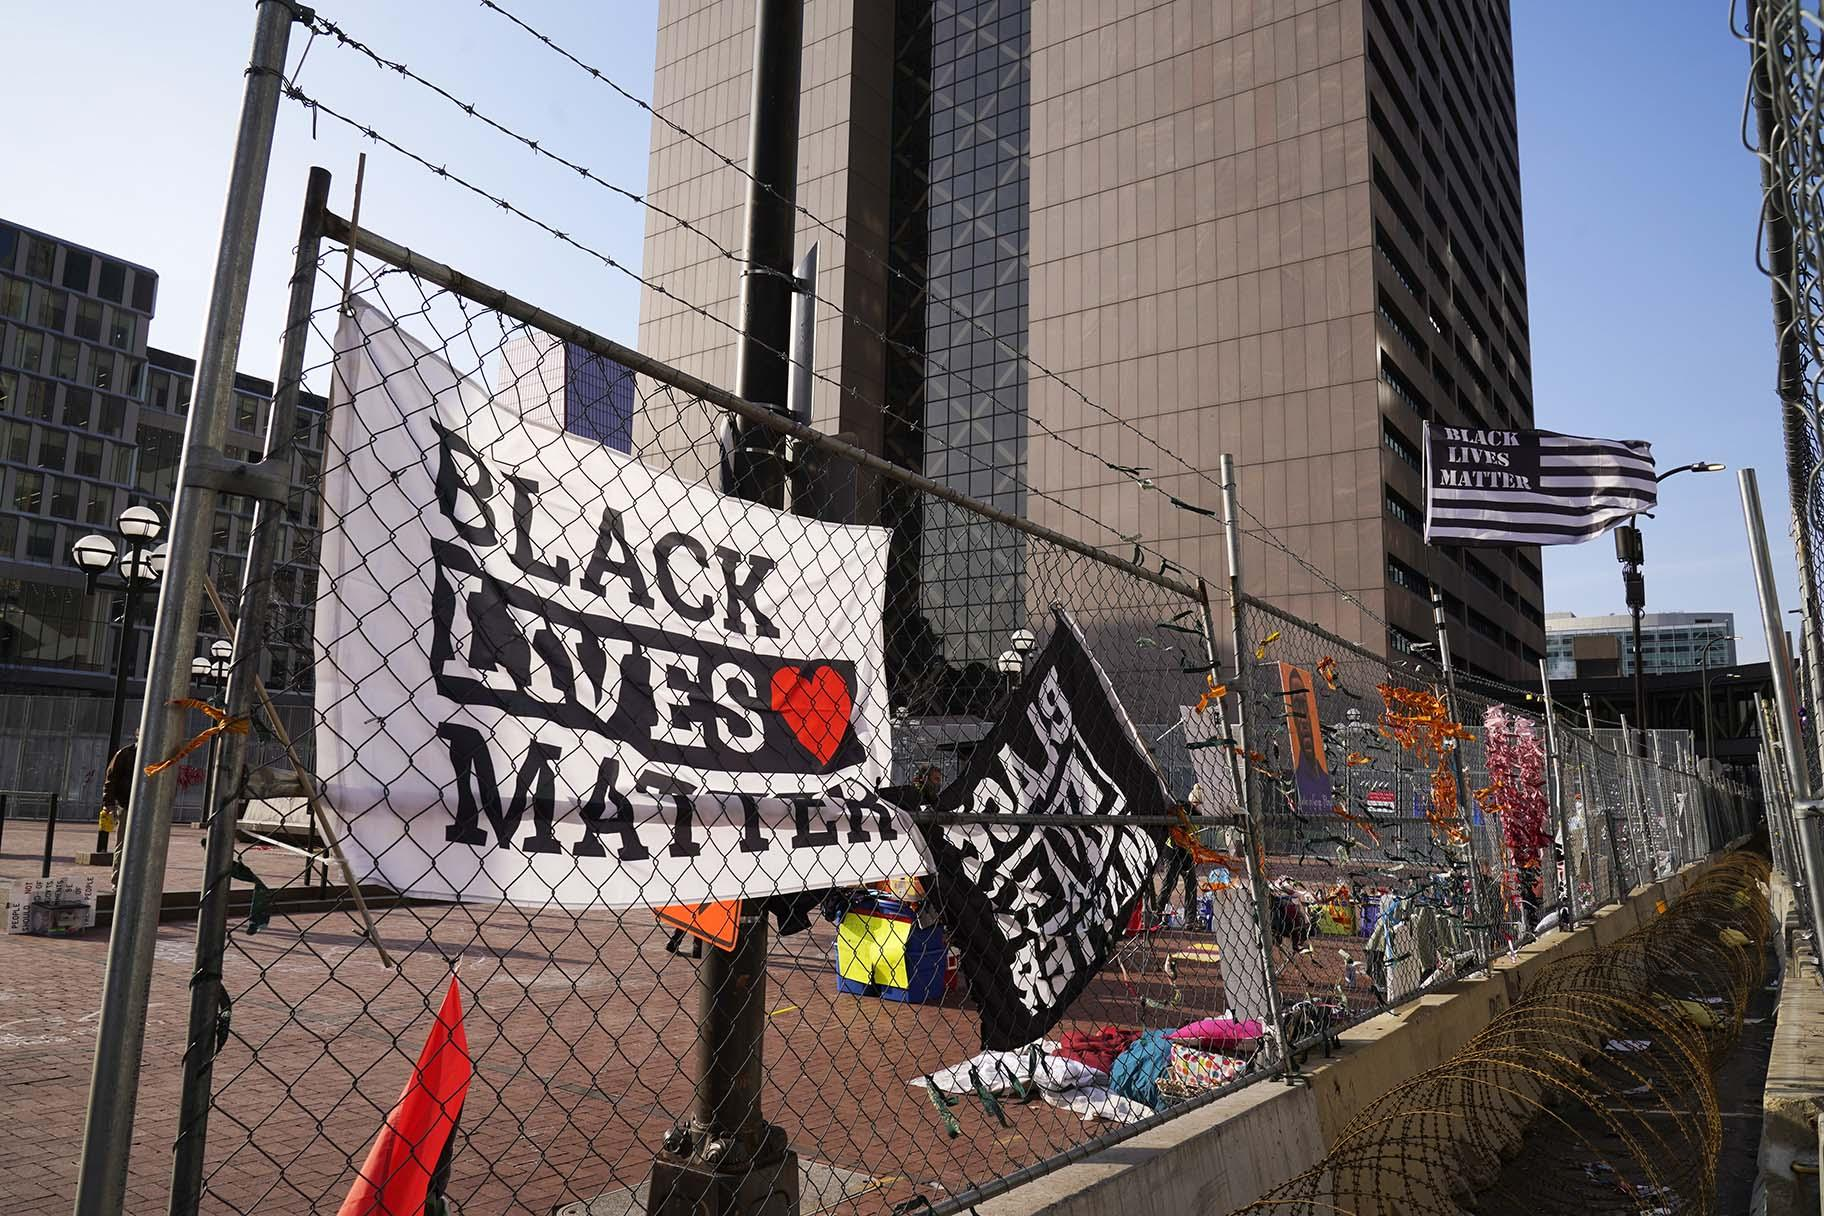 Black Lives Matter flags fly and line the fence surrounding the Hennepin County Government Center Friday, April 2, 2021 in Minneapolis where the trial for former Minneapolis police officer Derek Chauvin continues. (AP Photo / Jim Mone)